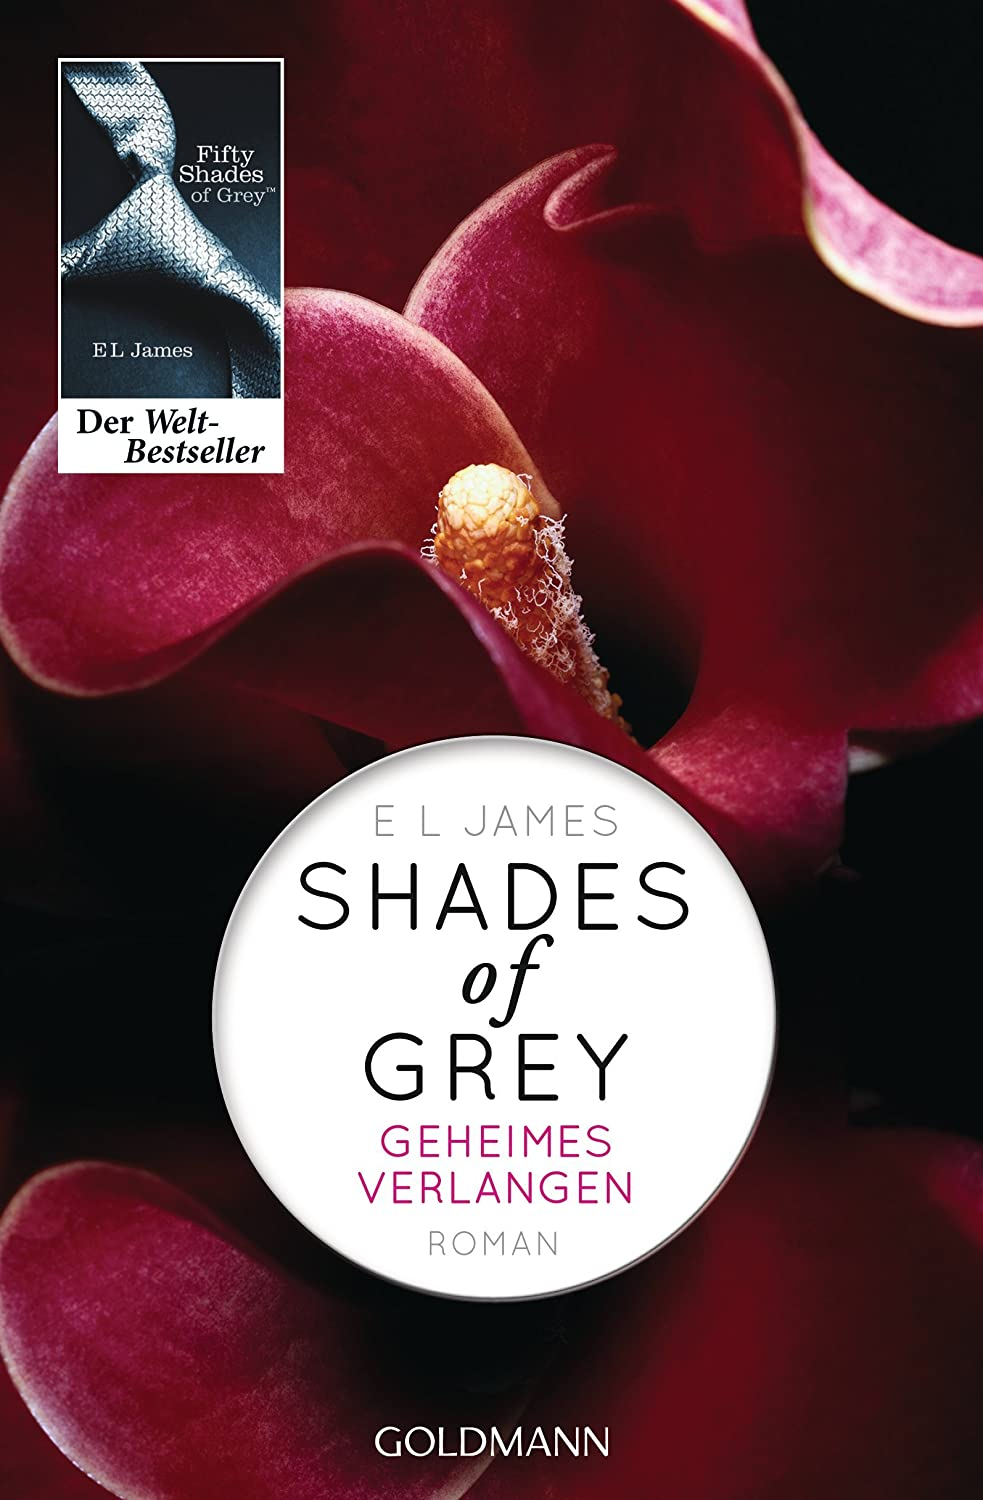 http://www.amazon.de/Shades-Grey-Geheimes-Verlangen-Roman-ebook/dp/B007Z7UENE/ref=sr_1_1?ie=UTF8&qid=1414596857&sr=8-1&keywords=shades+of+grey